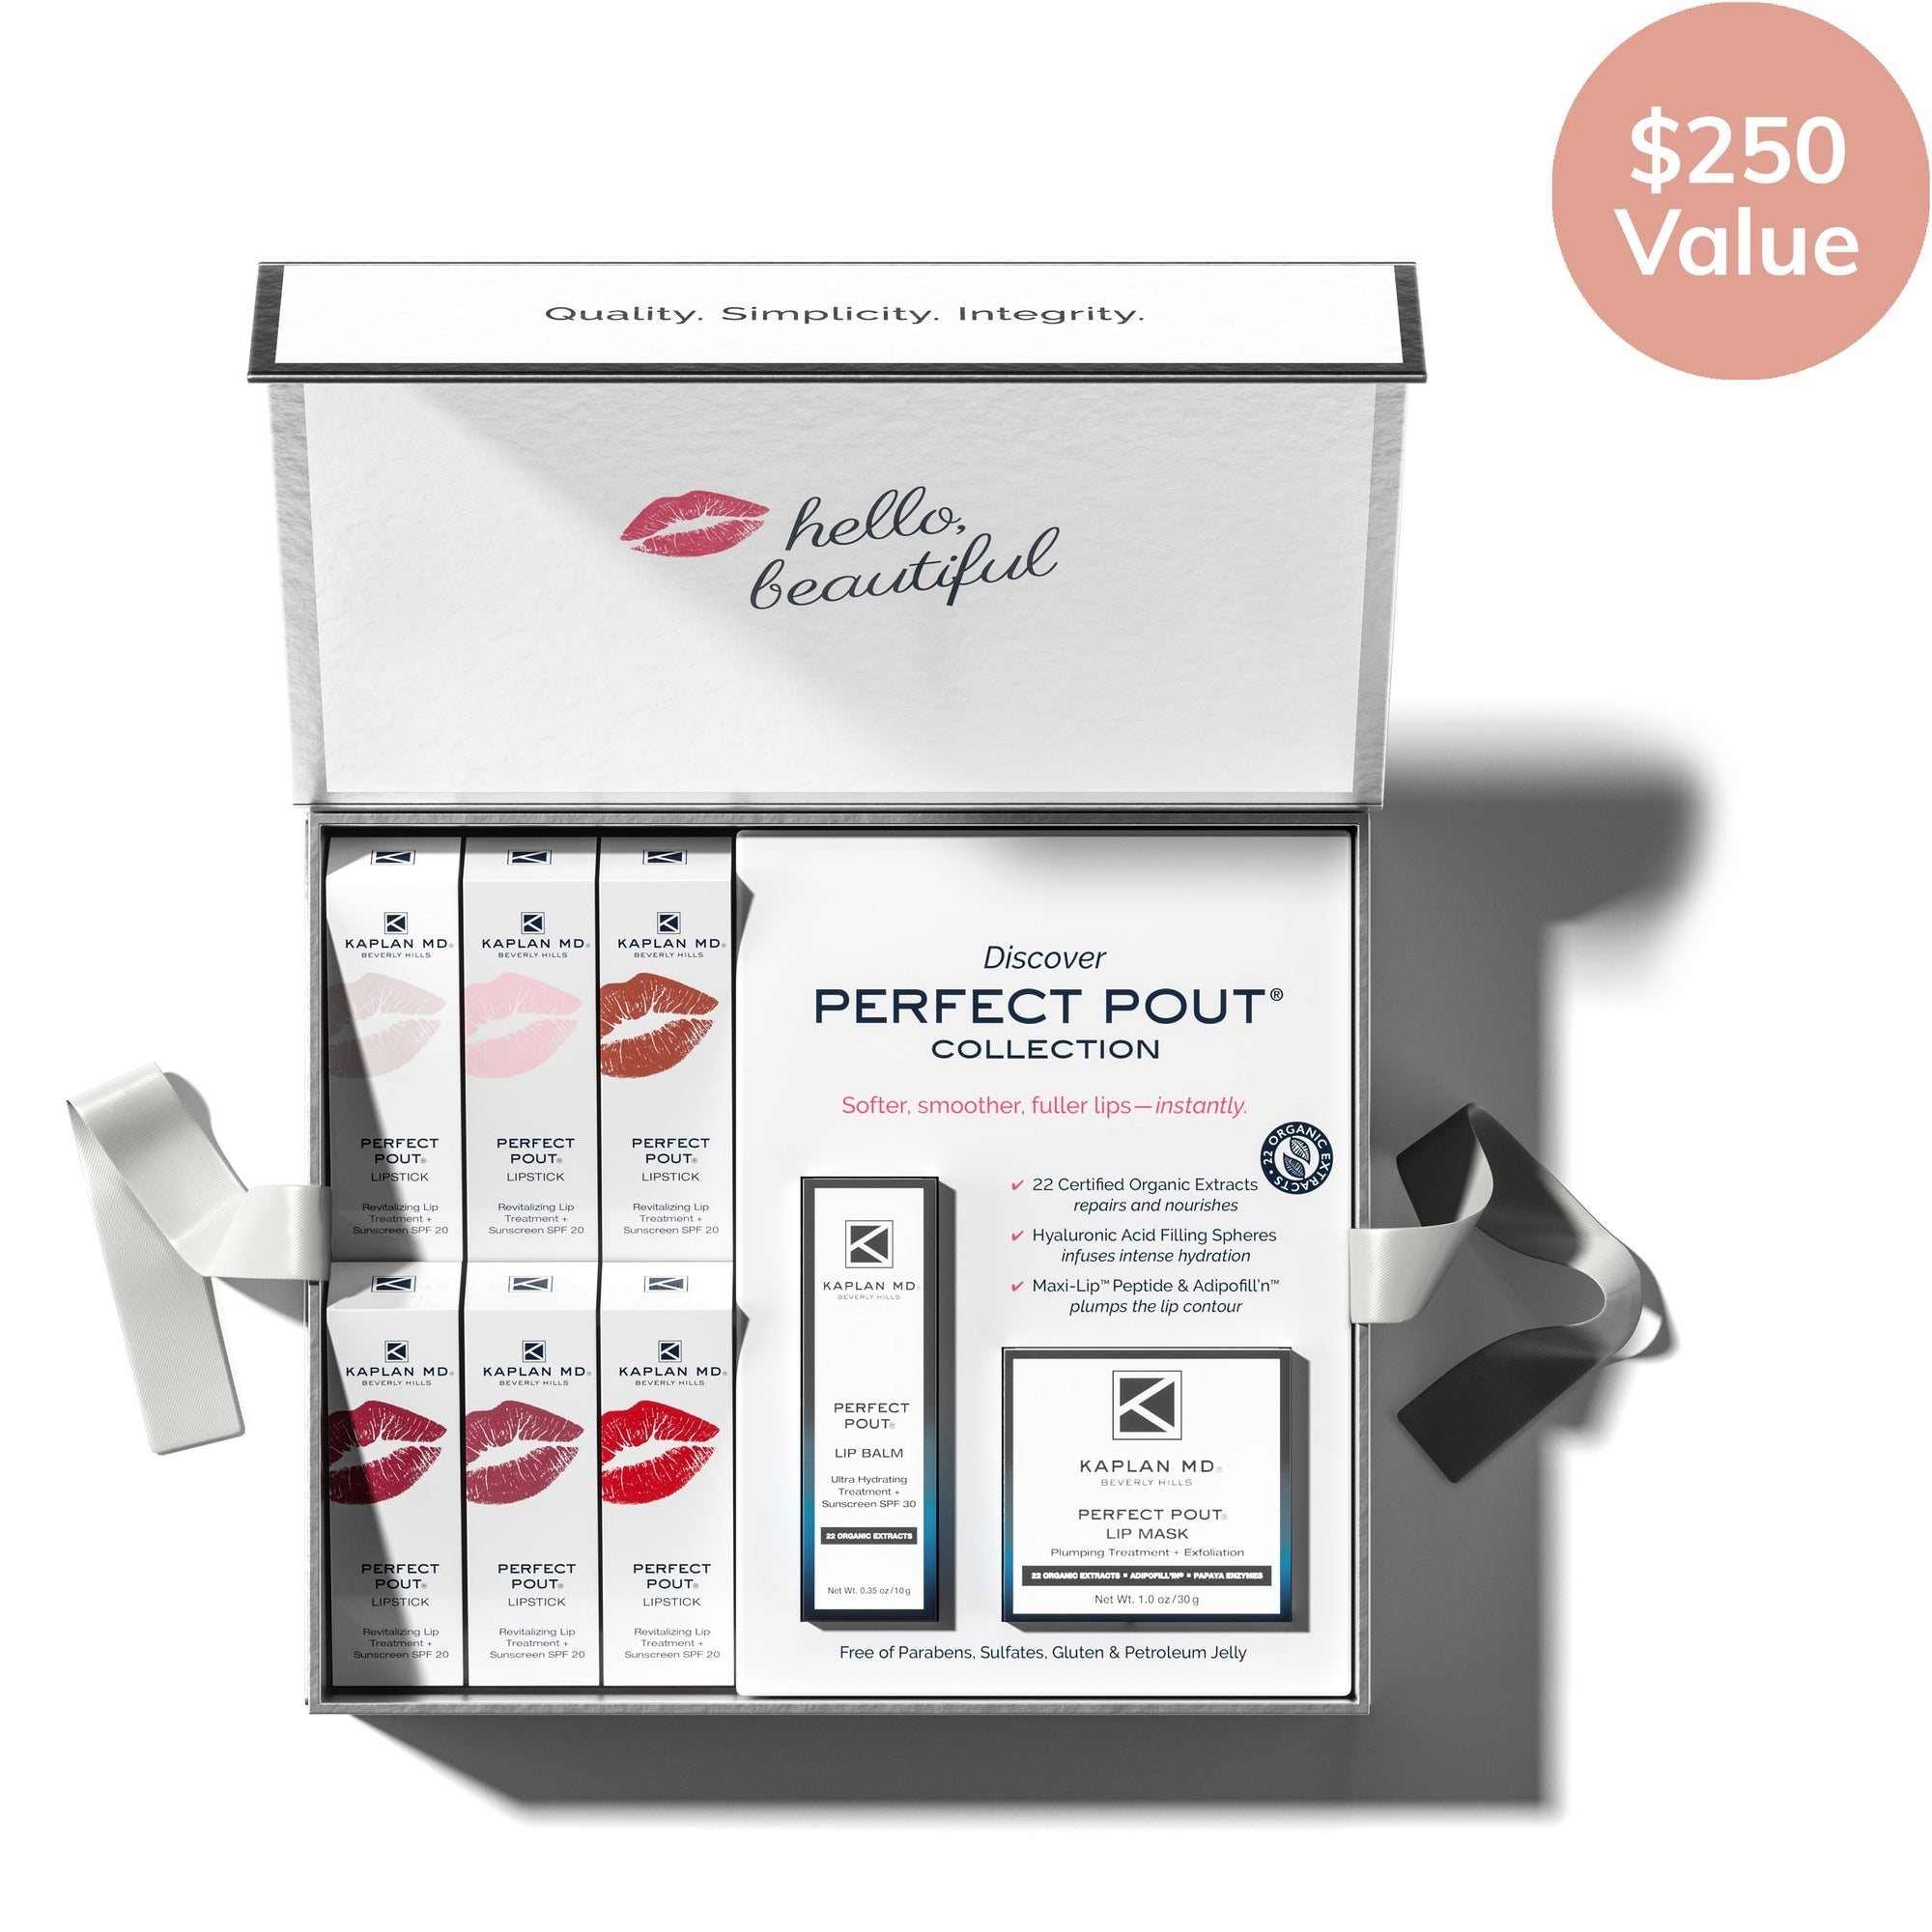 PERFECT POUT COLLECTION VAULT